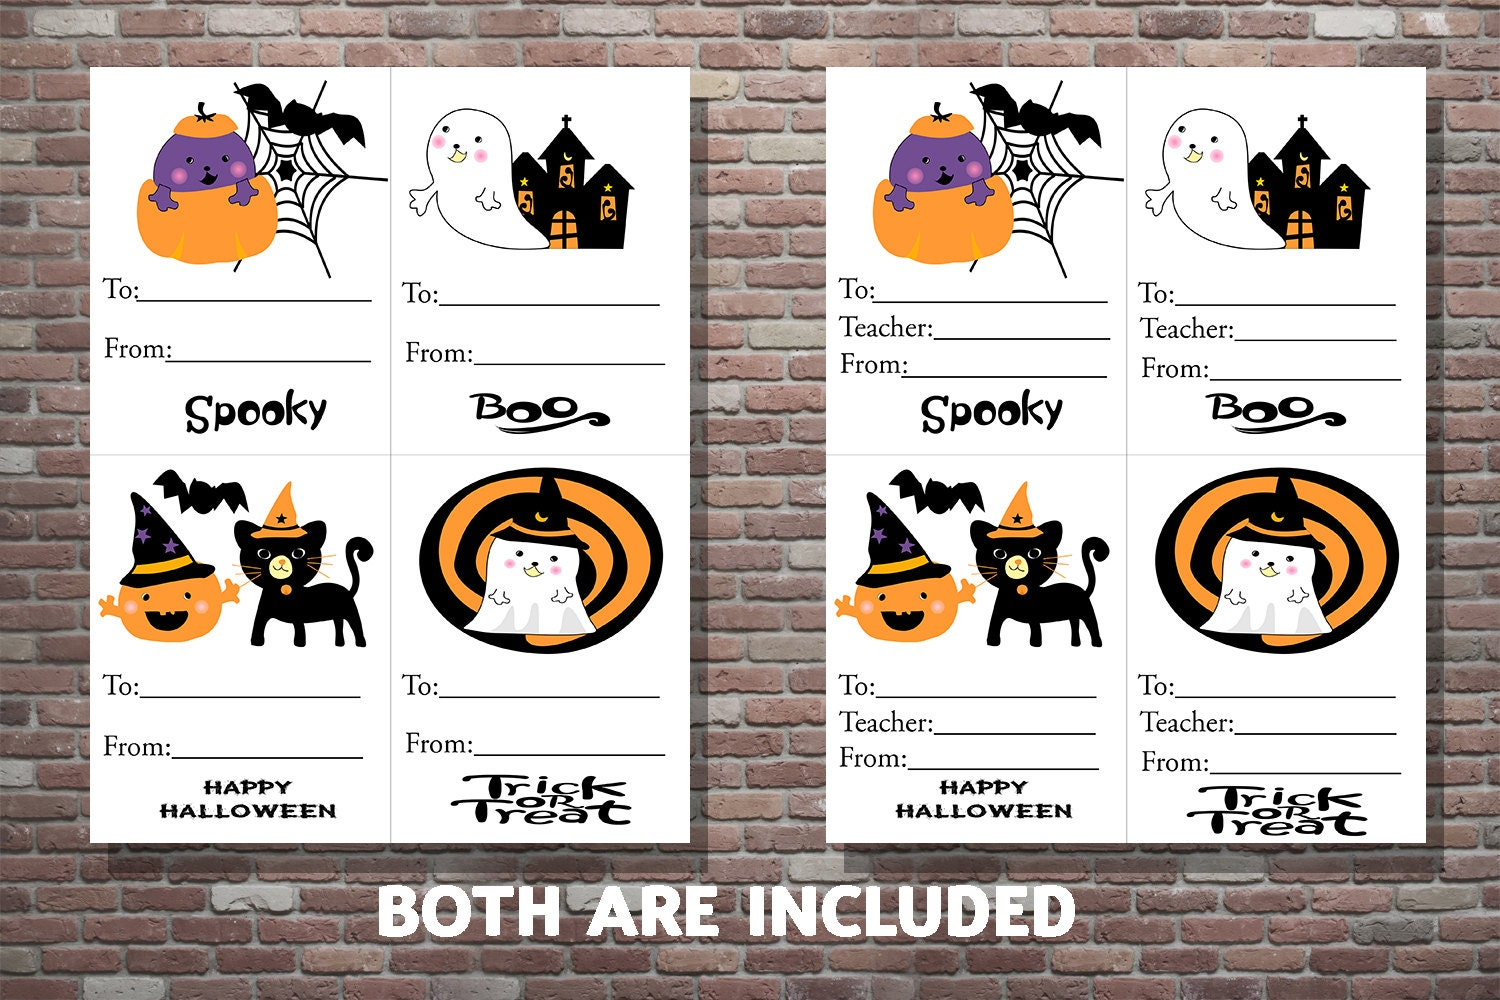 Remarkable image pertaining to boo grams printable